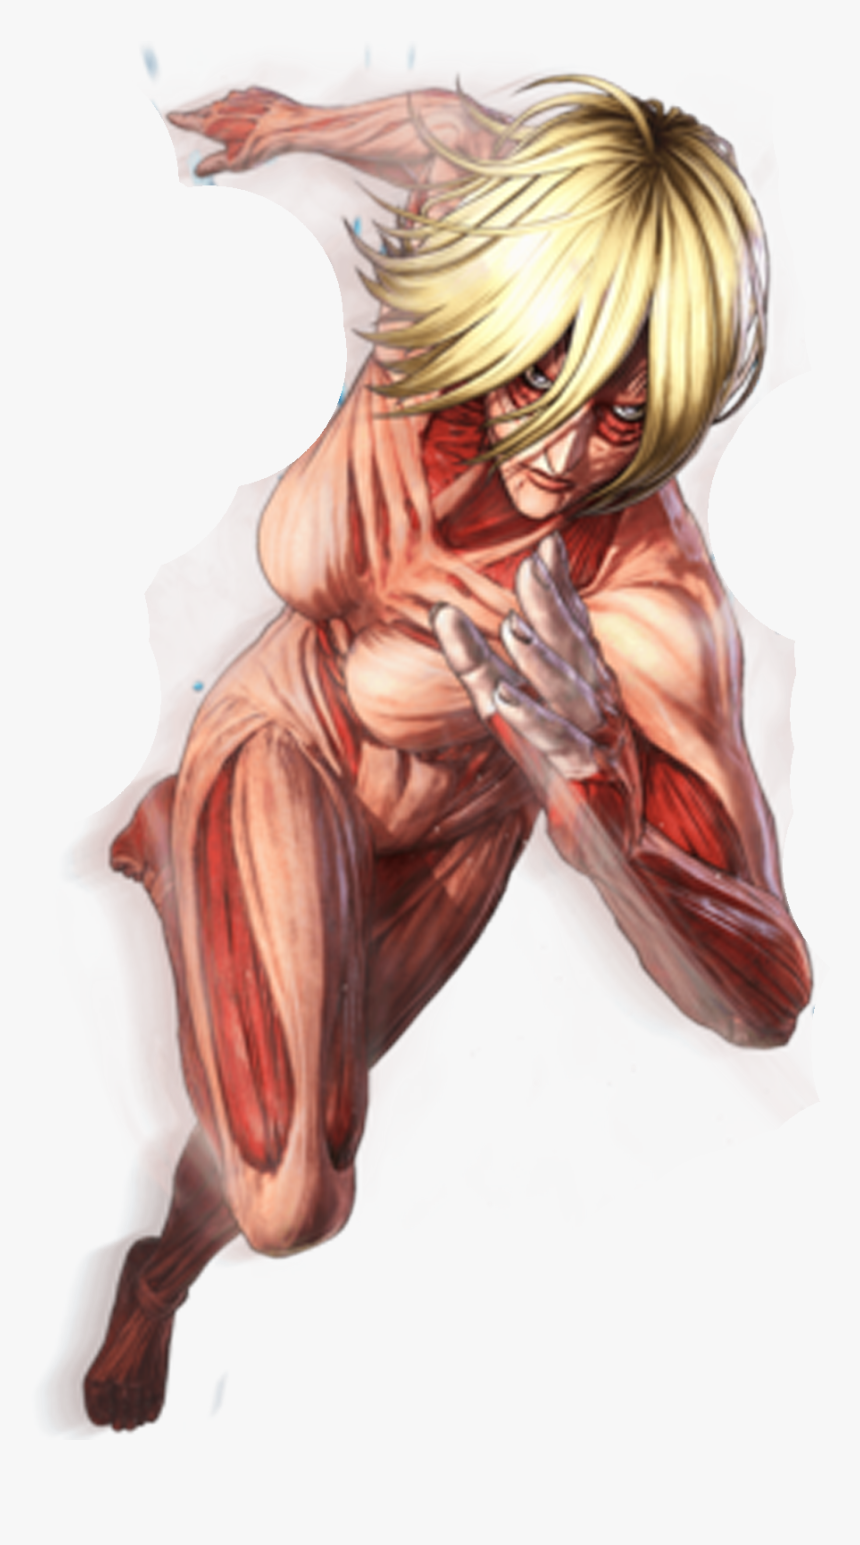 Colossal Titan Attack On Titan Png Transparent Png Transparent Png Image Pngitem